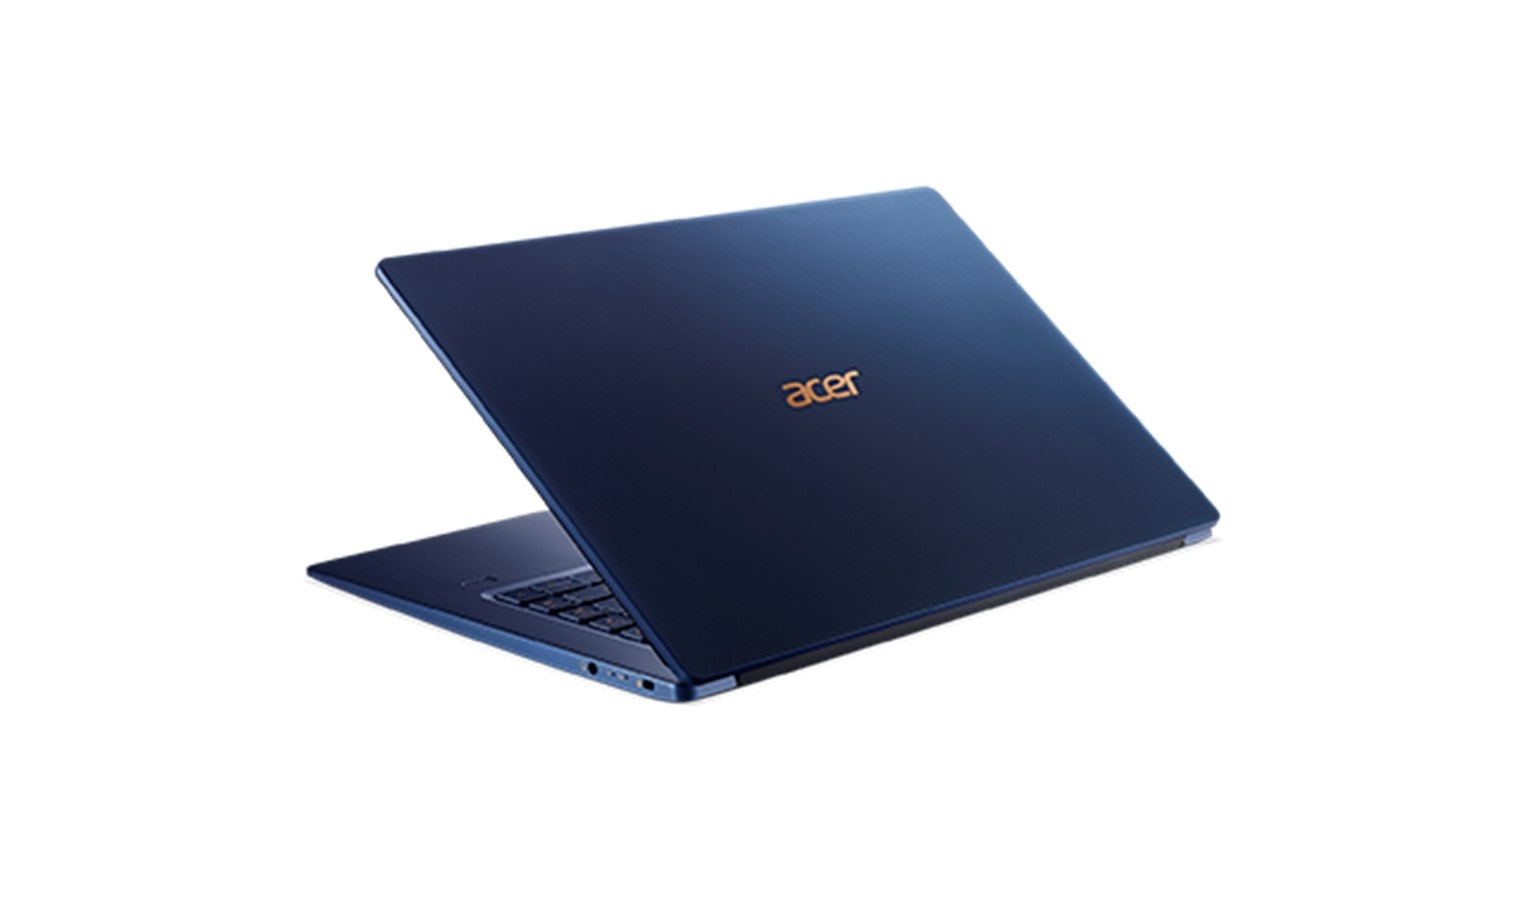 Acer Swift 5 SF515-51T-540M i5-8265U W10 FHD Laptop - Blue 01